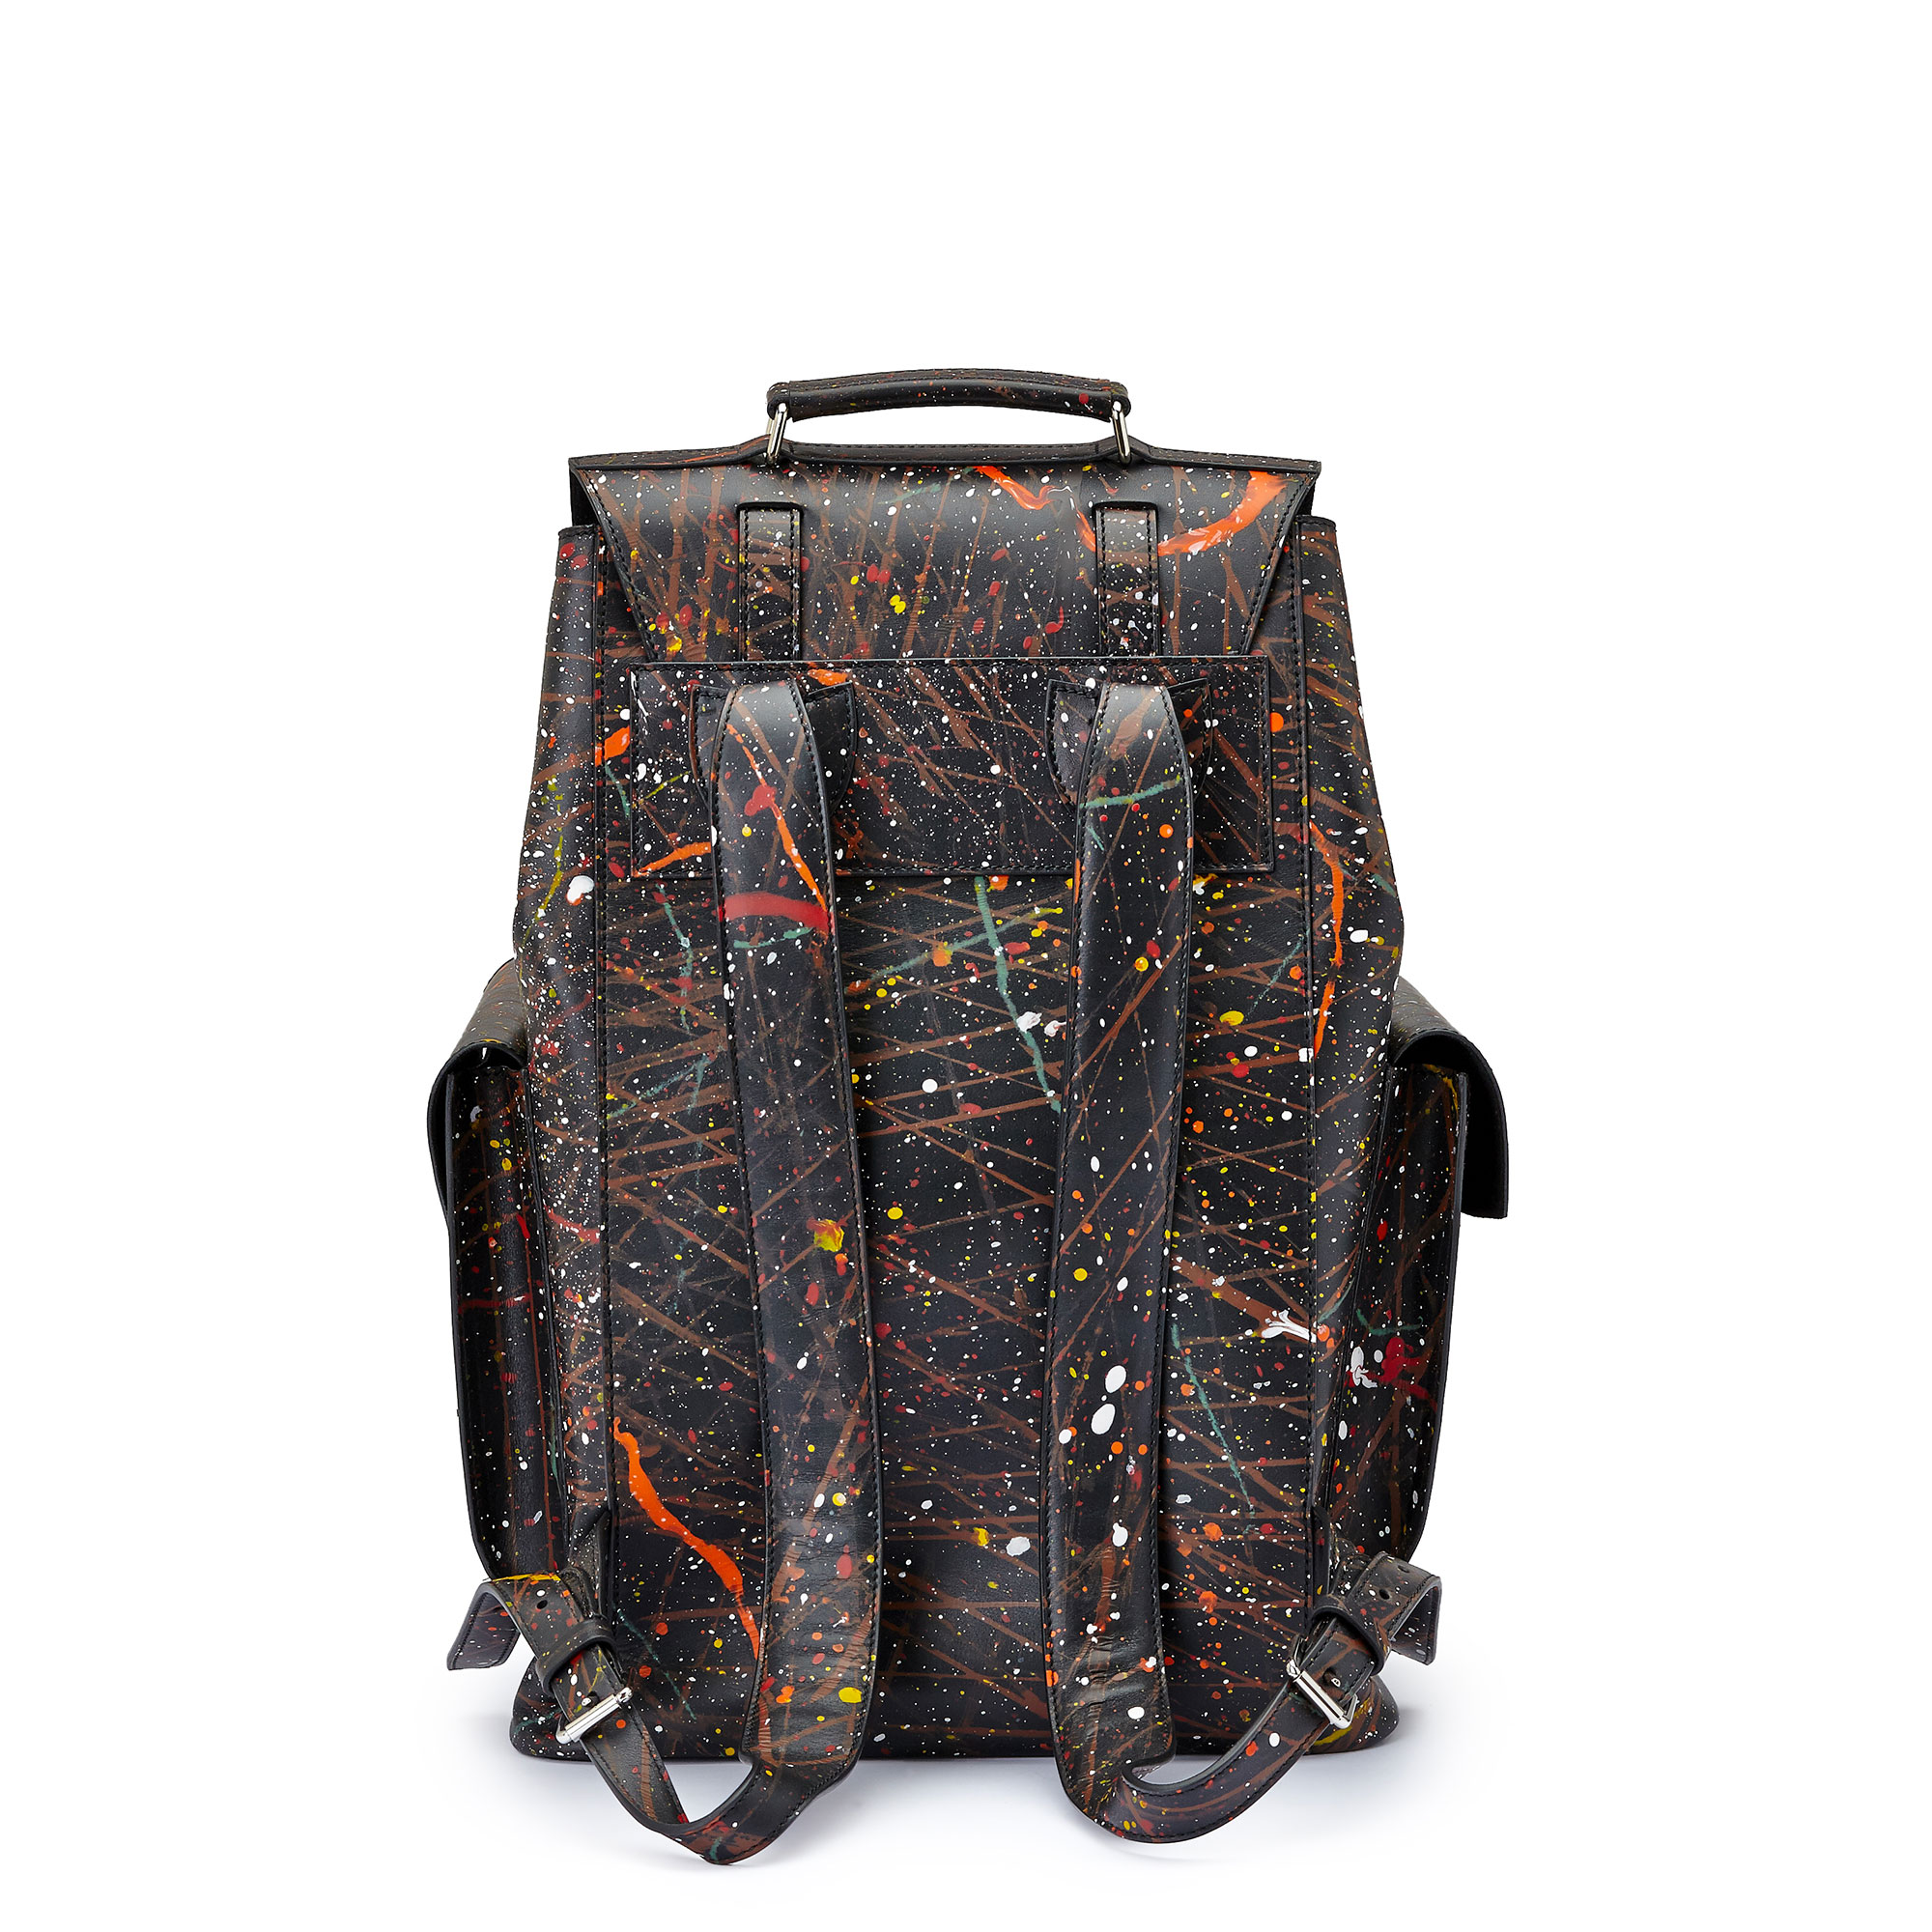 The black with edgy art french calf Traveller Backpack by Bertoni 1949 03